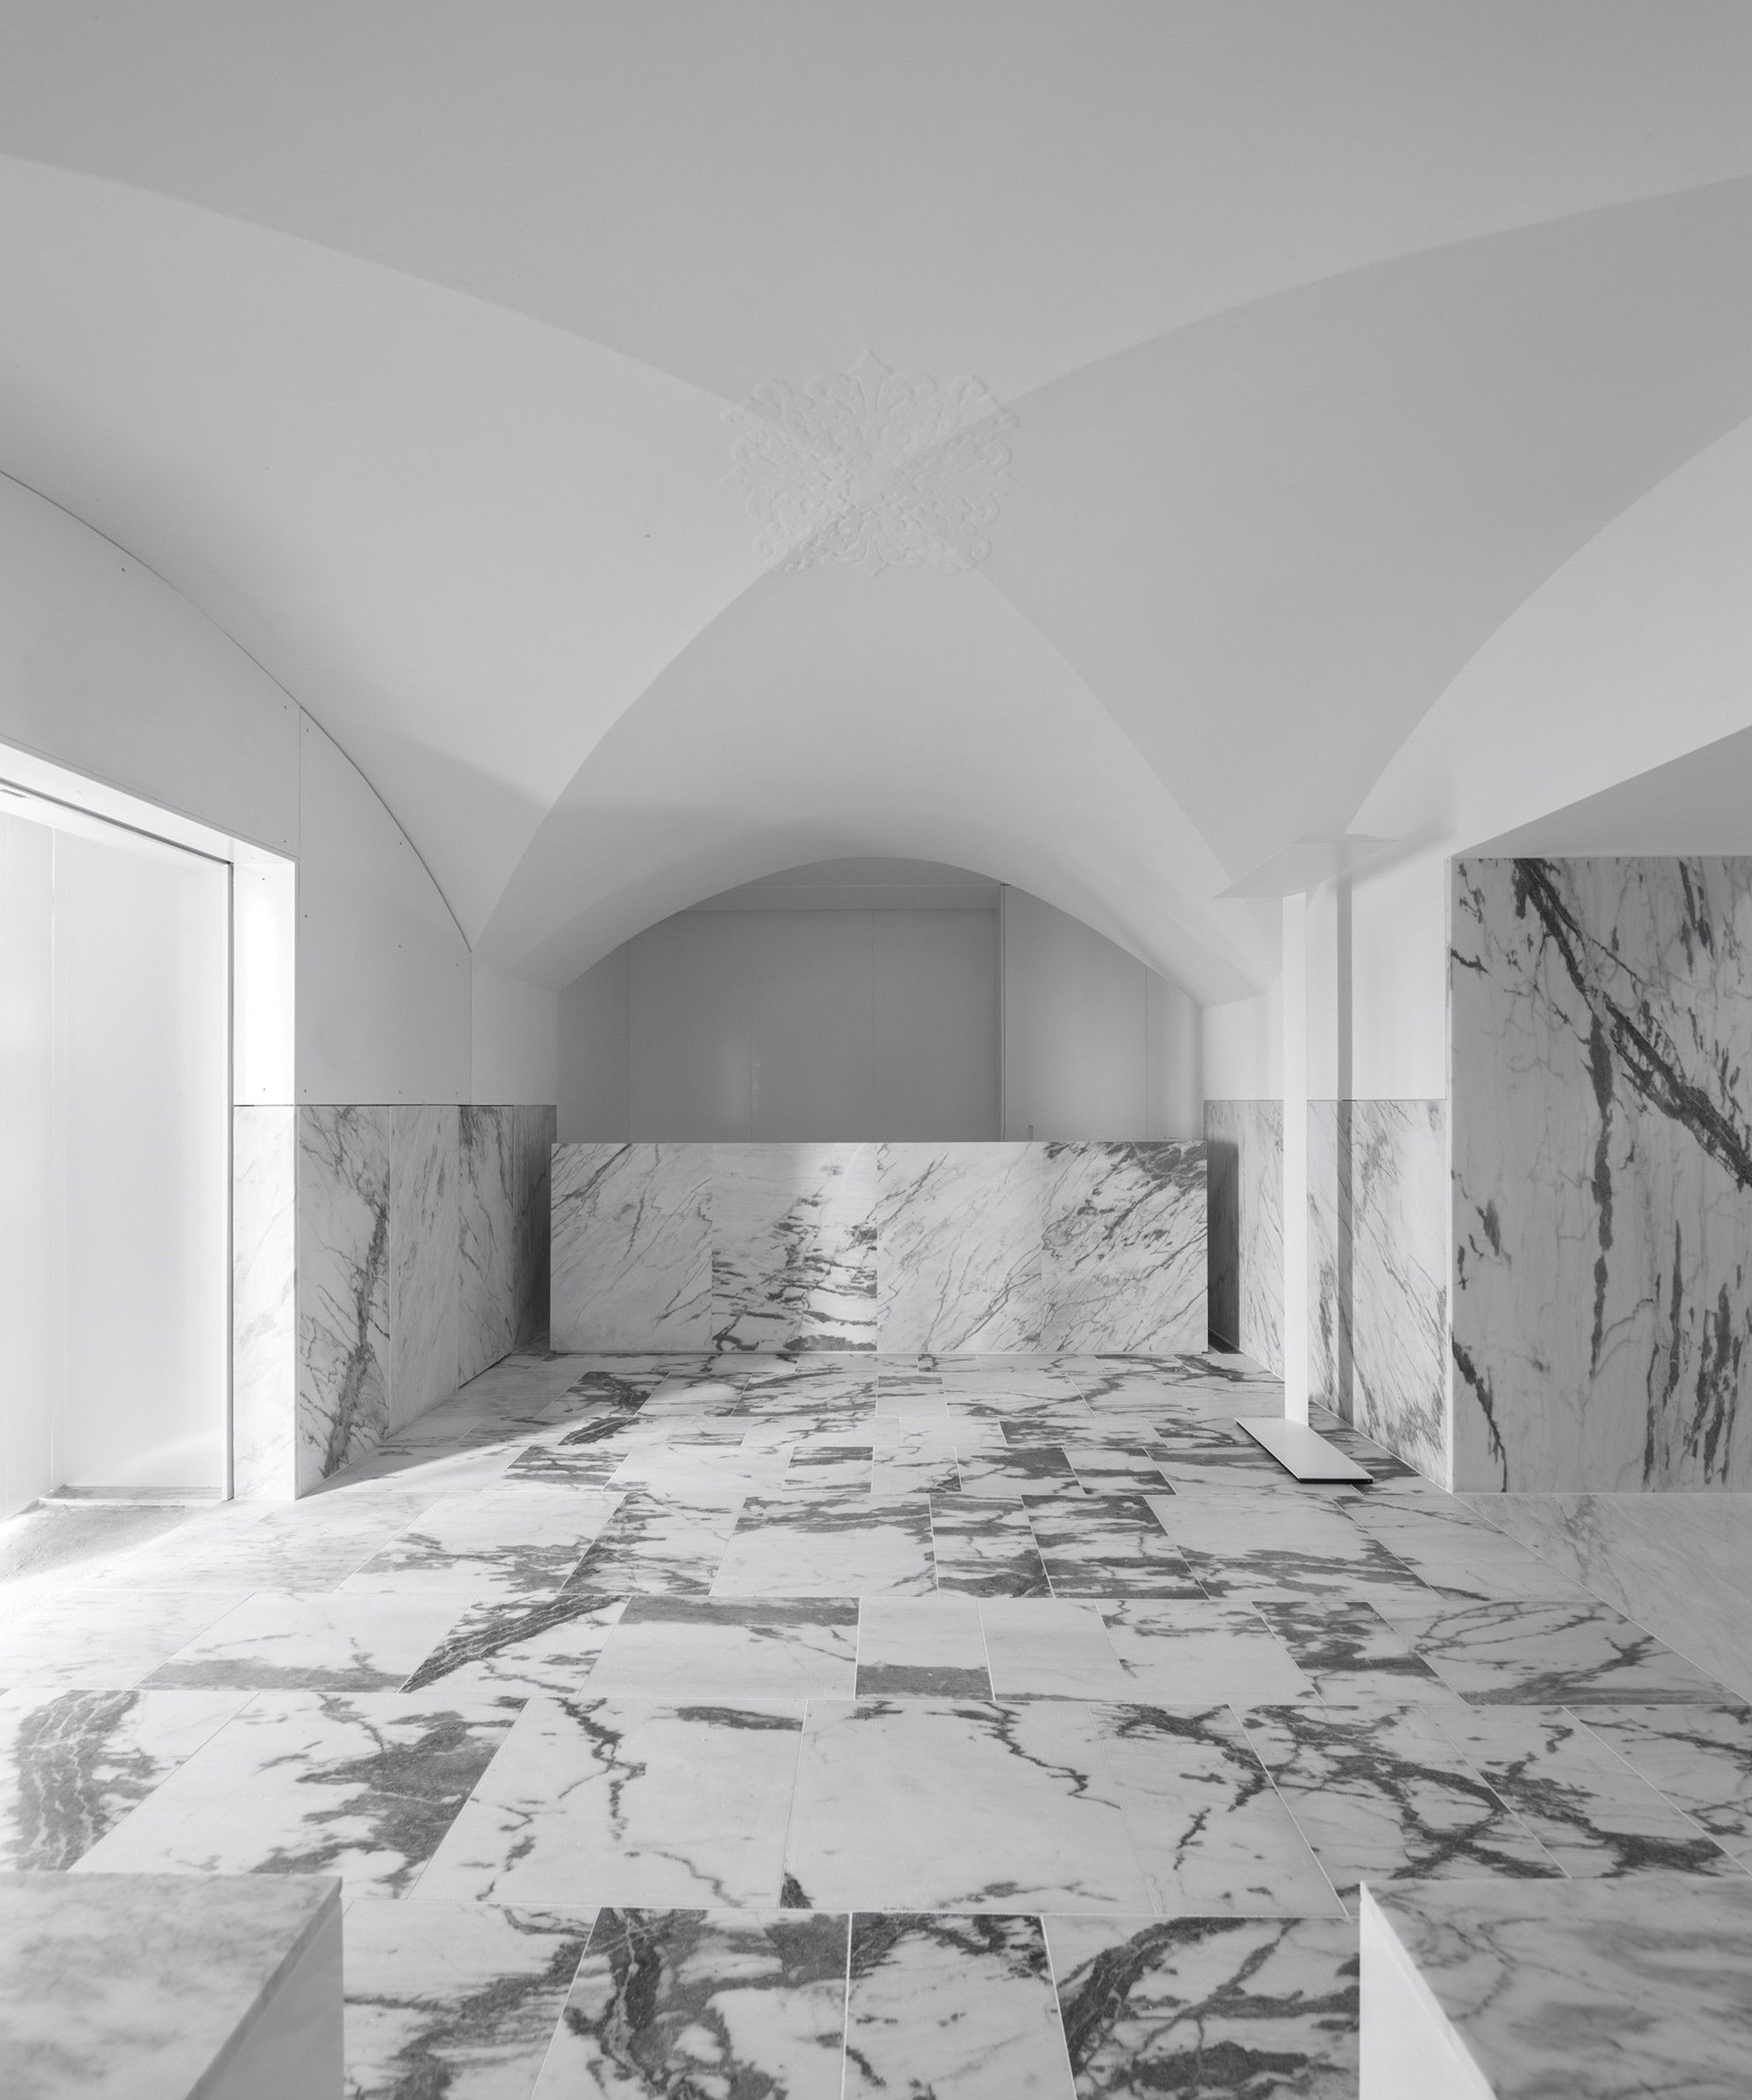 Built by CVDB arquitectos in Arraiolos, Portugal with surface 1200.0. Images by FG+SG - architectural photography. The Tapestry Museum in Arraiolos occupies an existent building that once was Espírito Santo  Hospital. The building i...